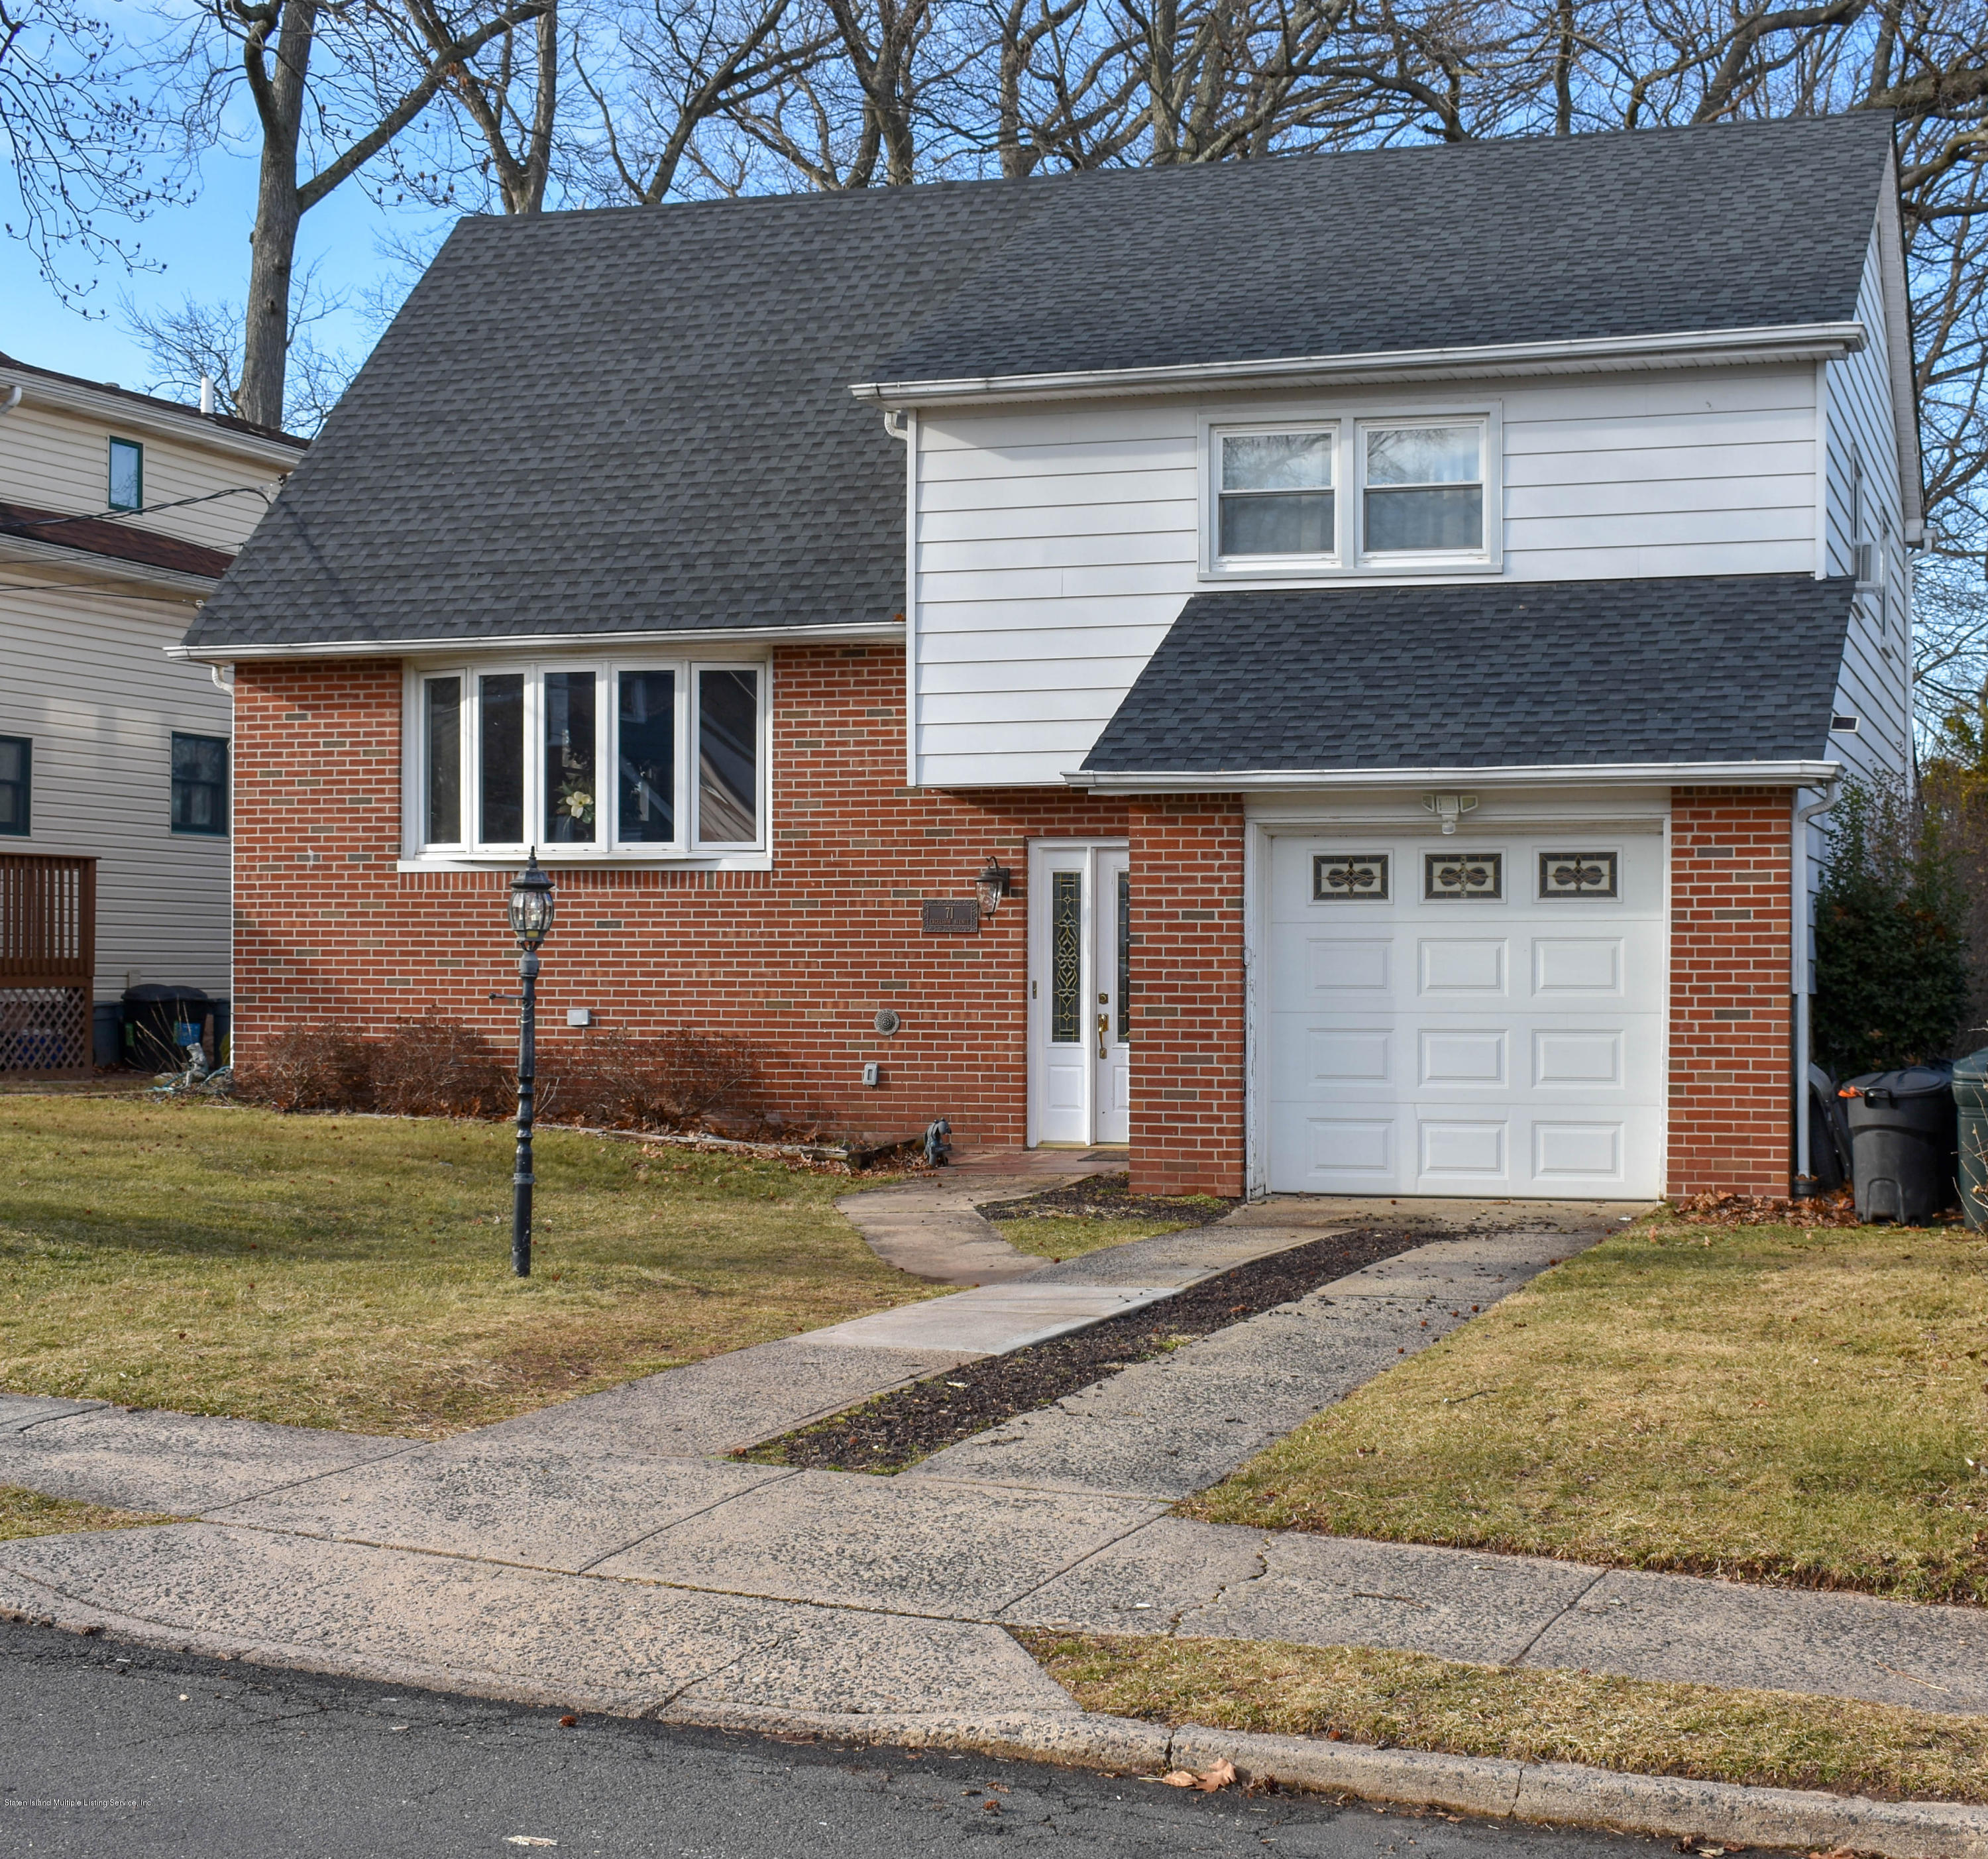 Single Family - Detached 71 Excelsior Avenue  Staten Island, NY 10309, MLS-1126131-2